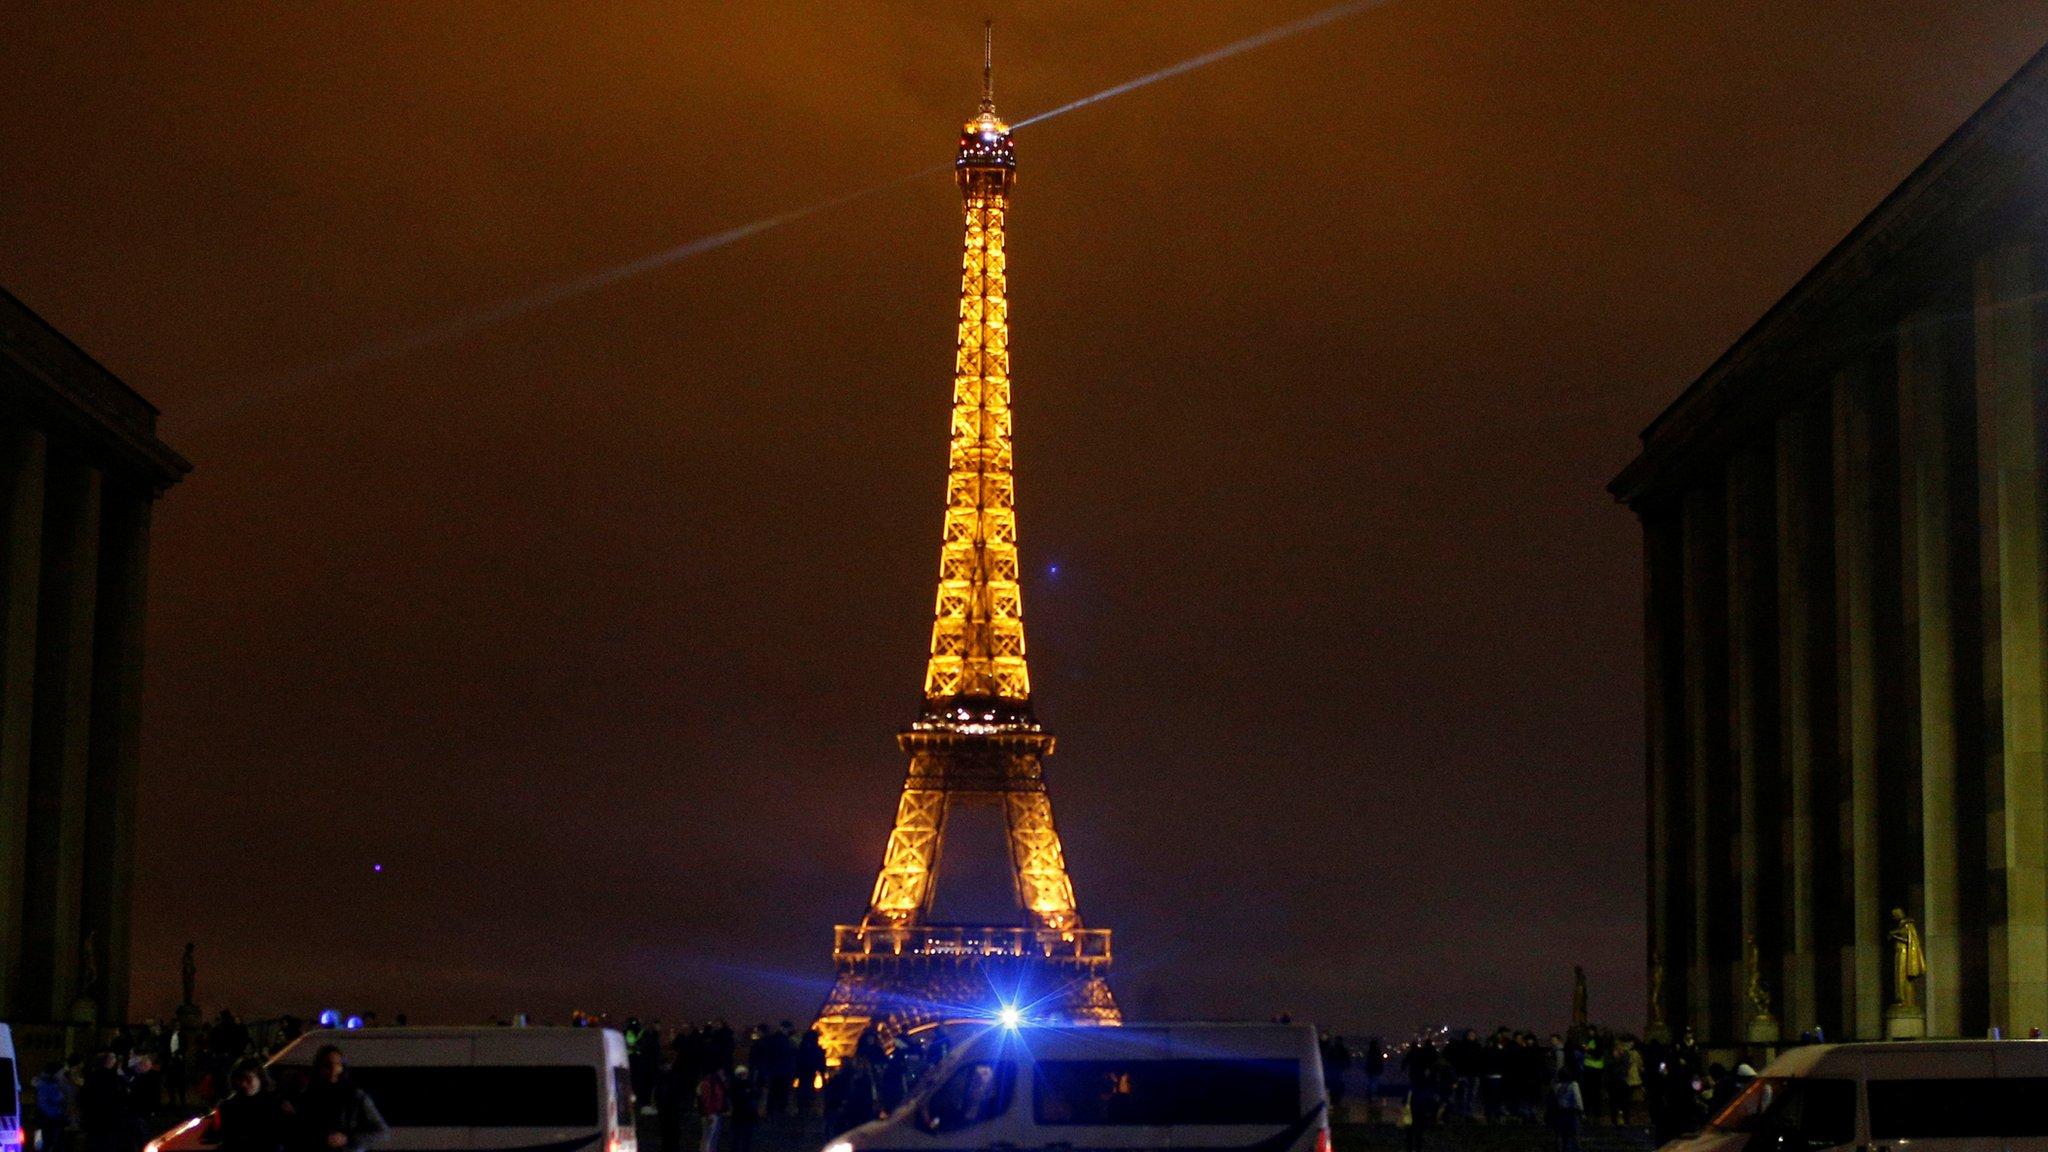 France protests: Tourist sites to close on Saturday amid Paris riot fears